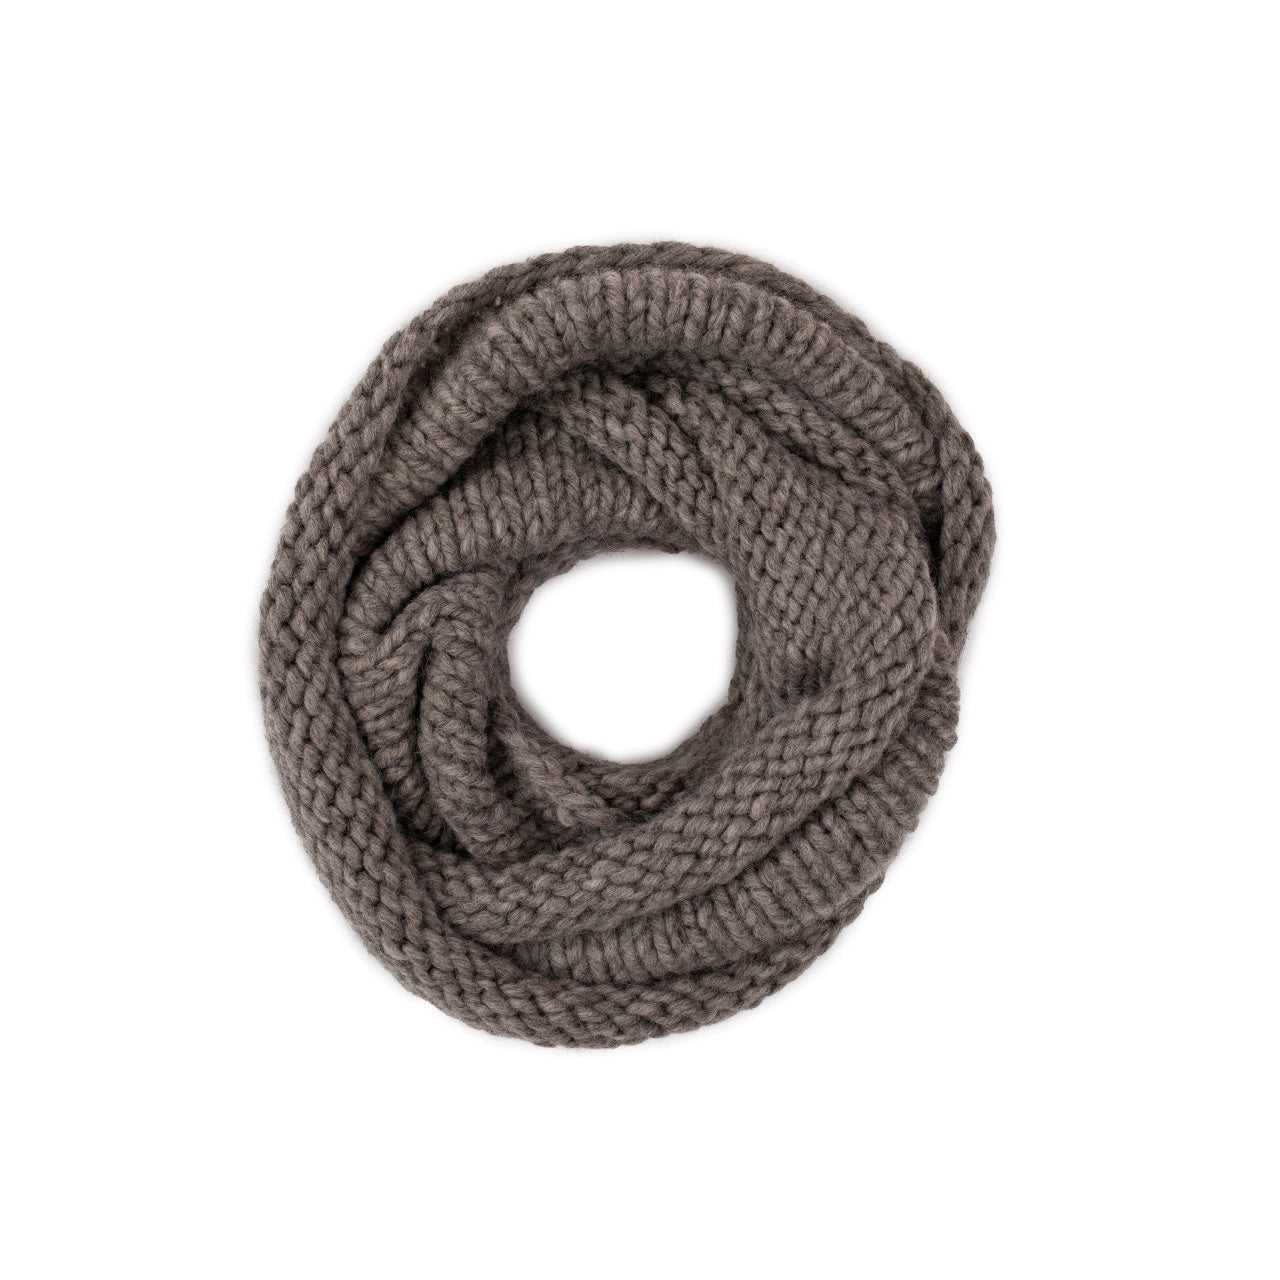 Aura scarf in gray